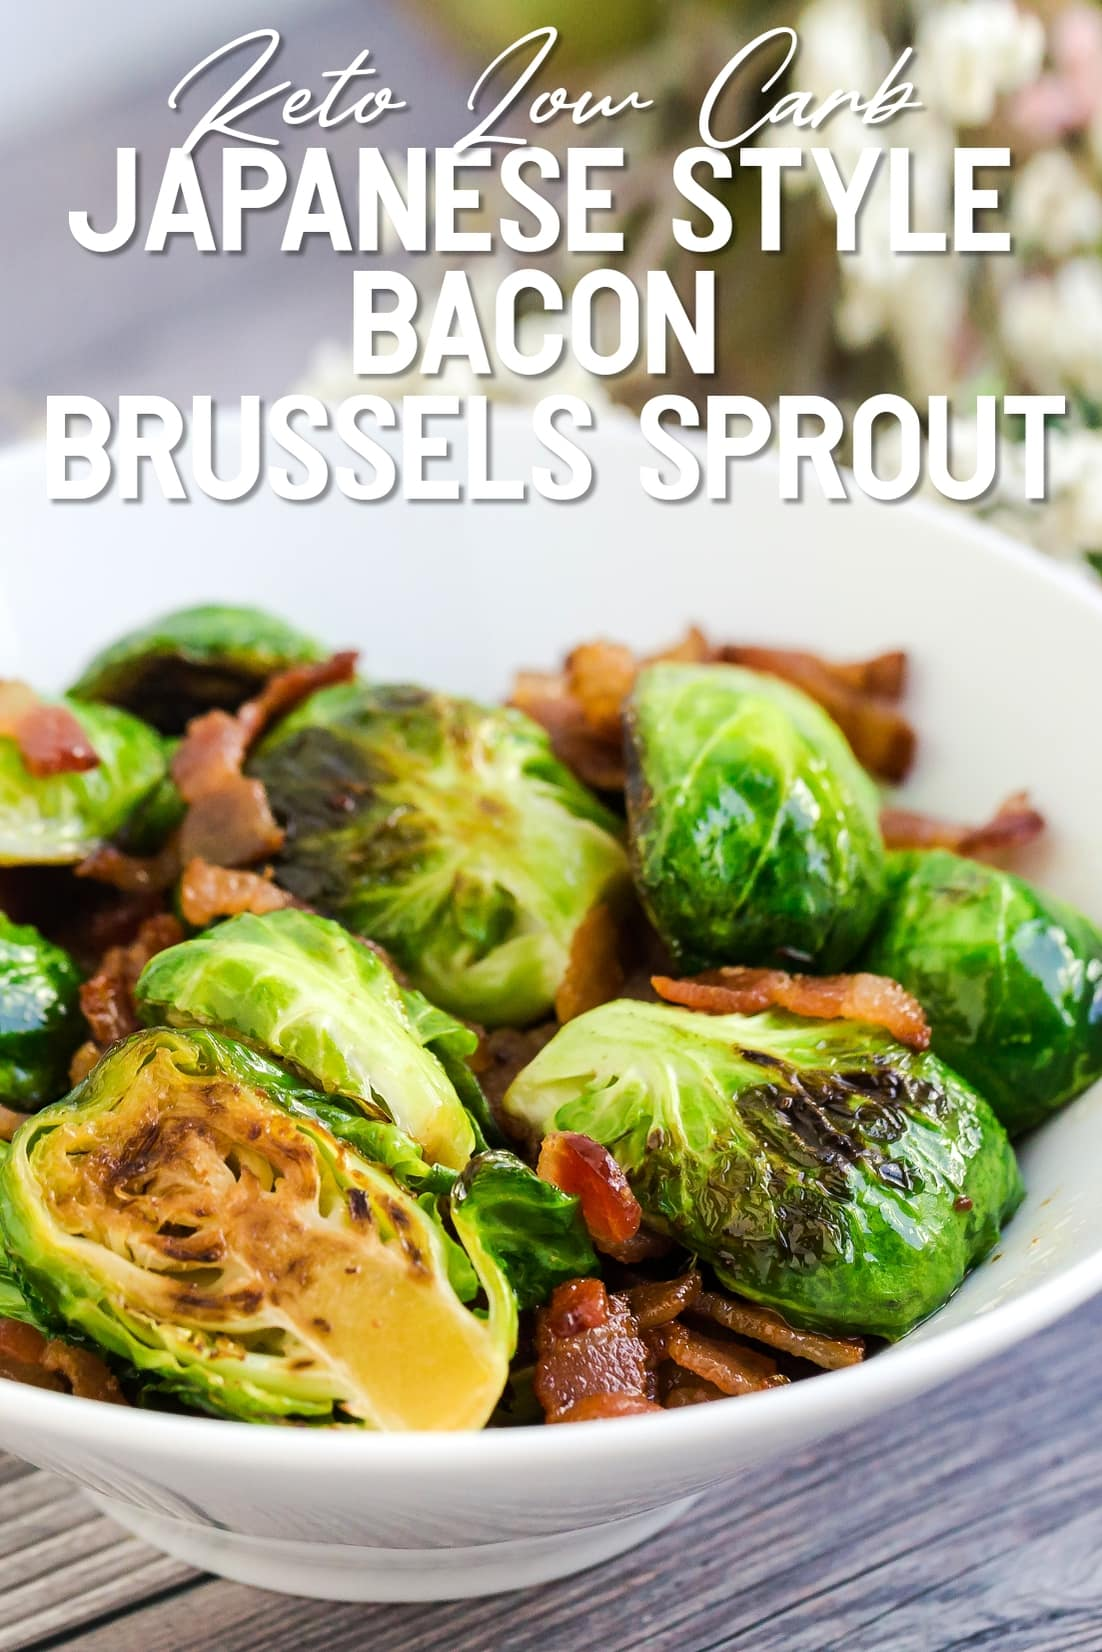 Keto Low Carb Japanese Style Bacon Brussels Sprout close up